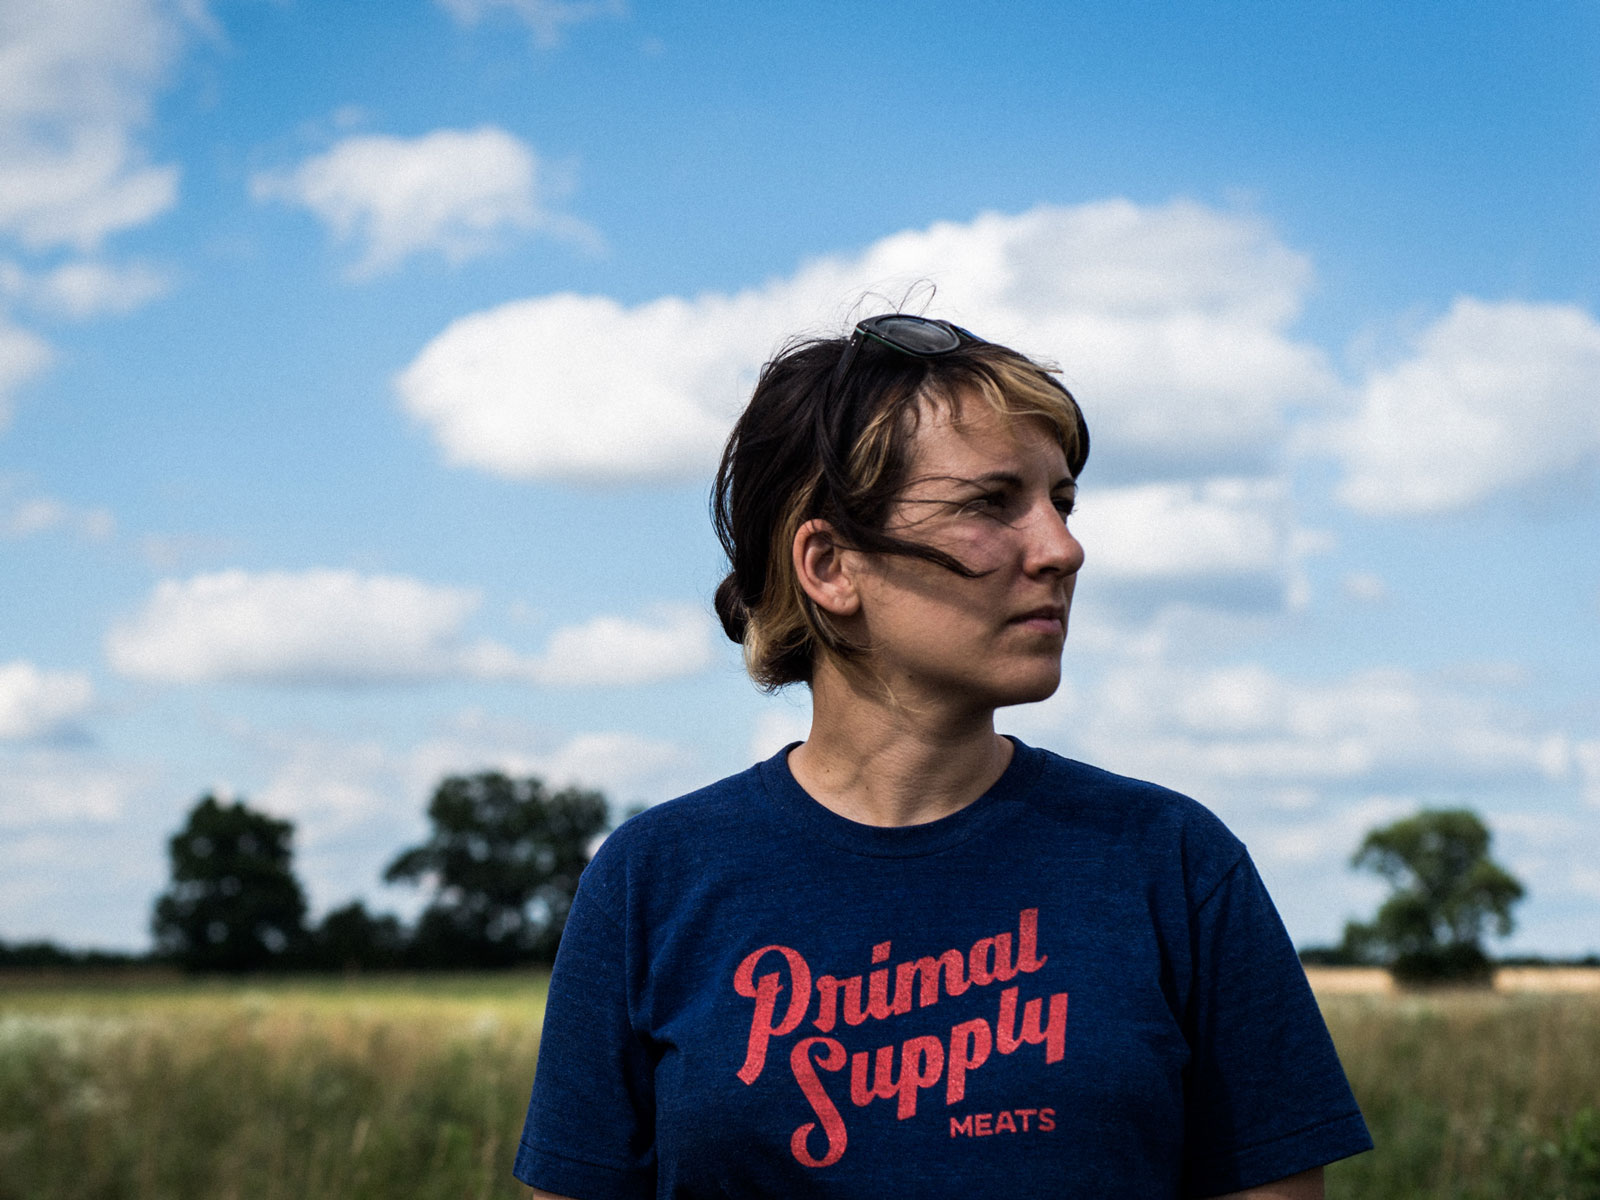 Heather of Primal Supply Meats